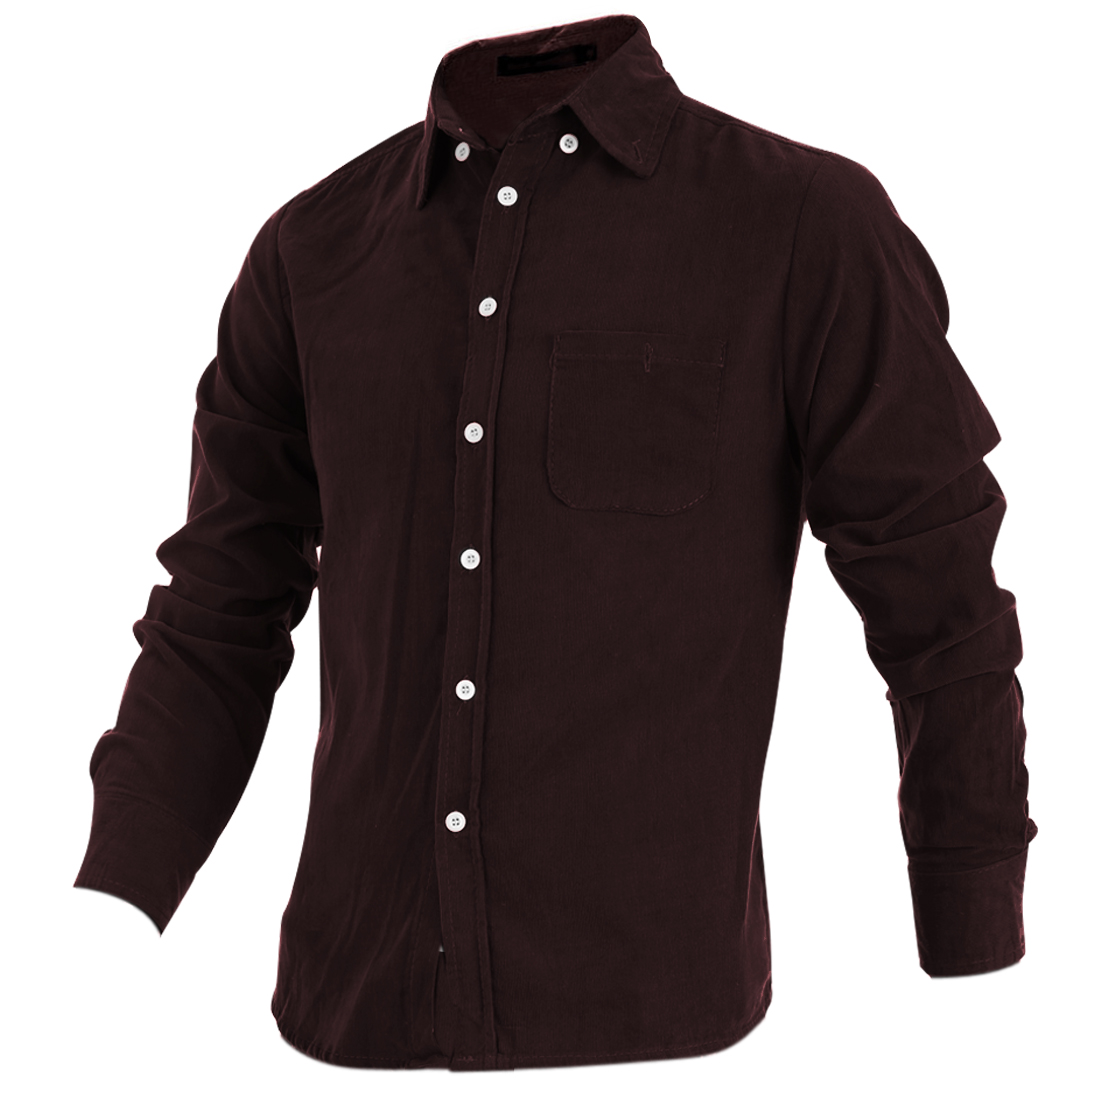 Mans Korea Style Long Sleeve Button Down Front Brown Corduroy Shirt M